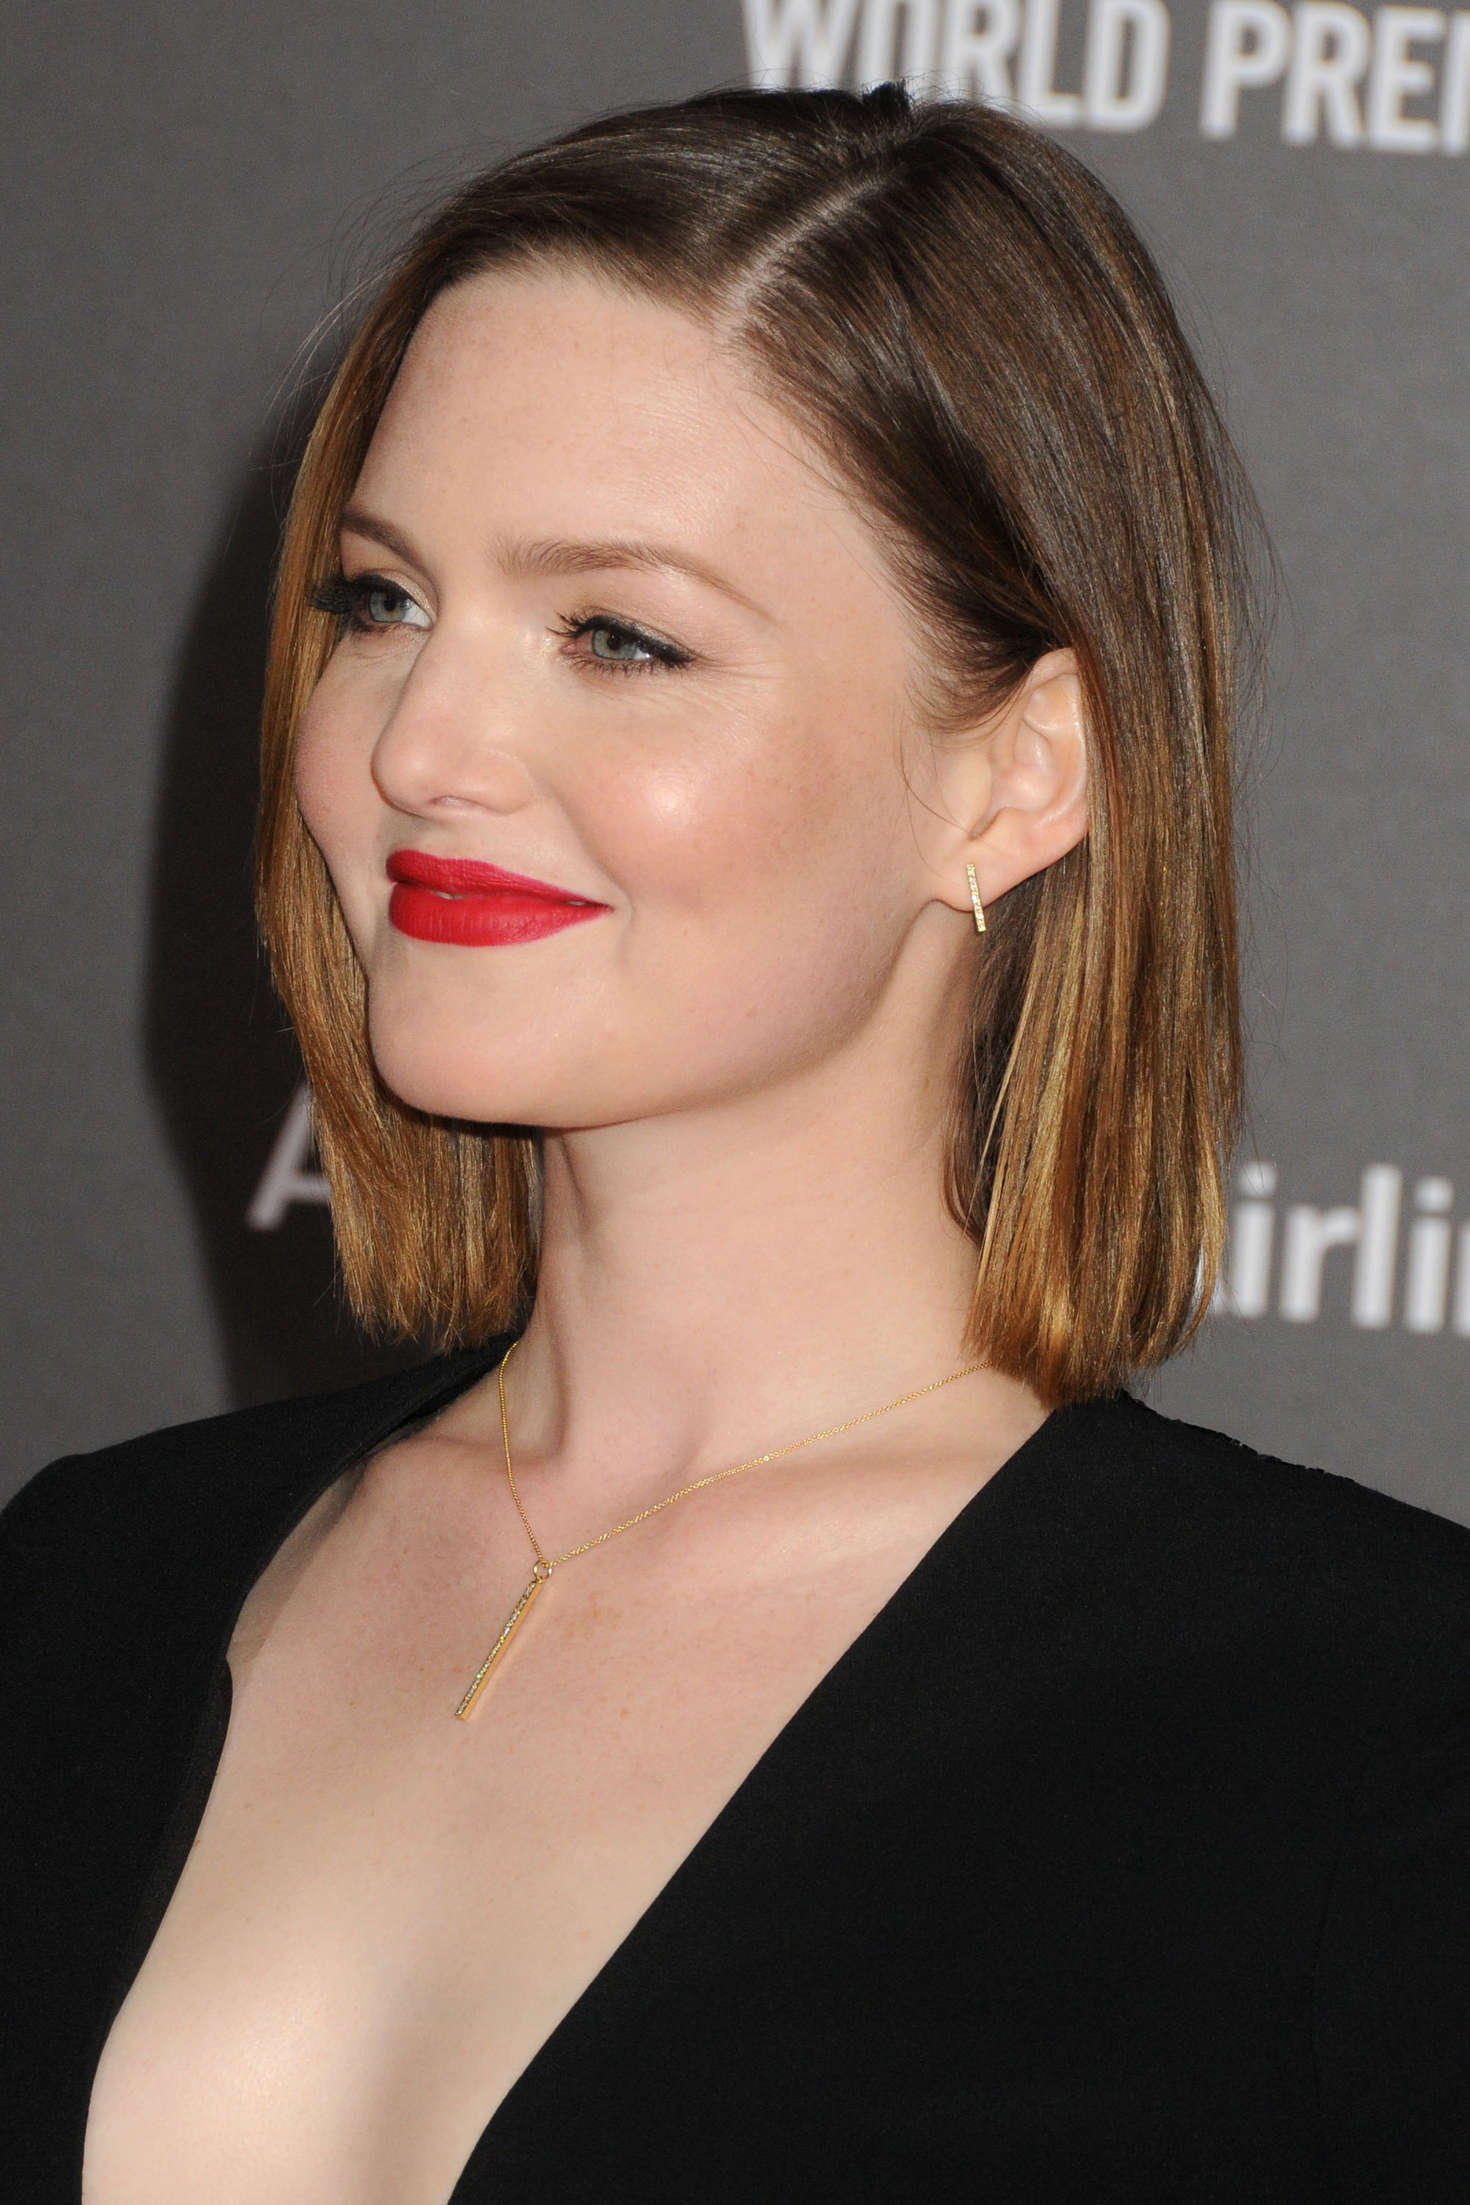 Holliday Grainger The Finest Hours Premiere in Los Angeles